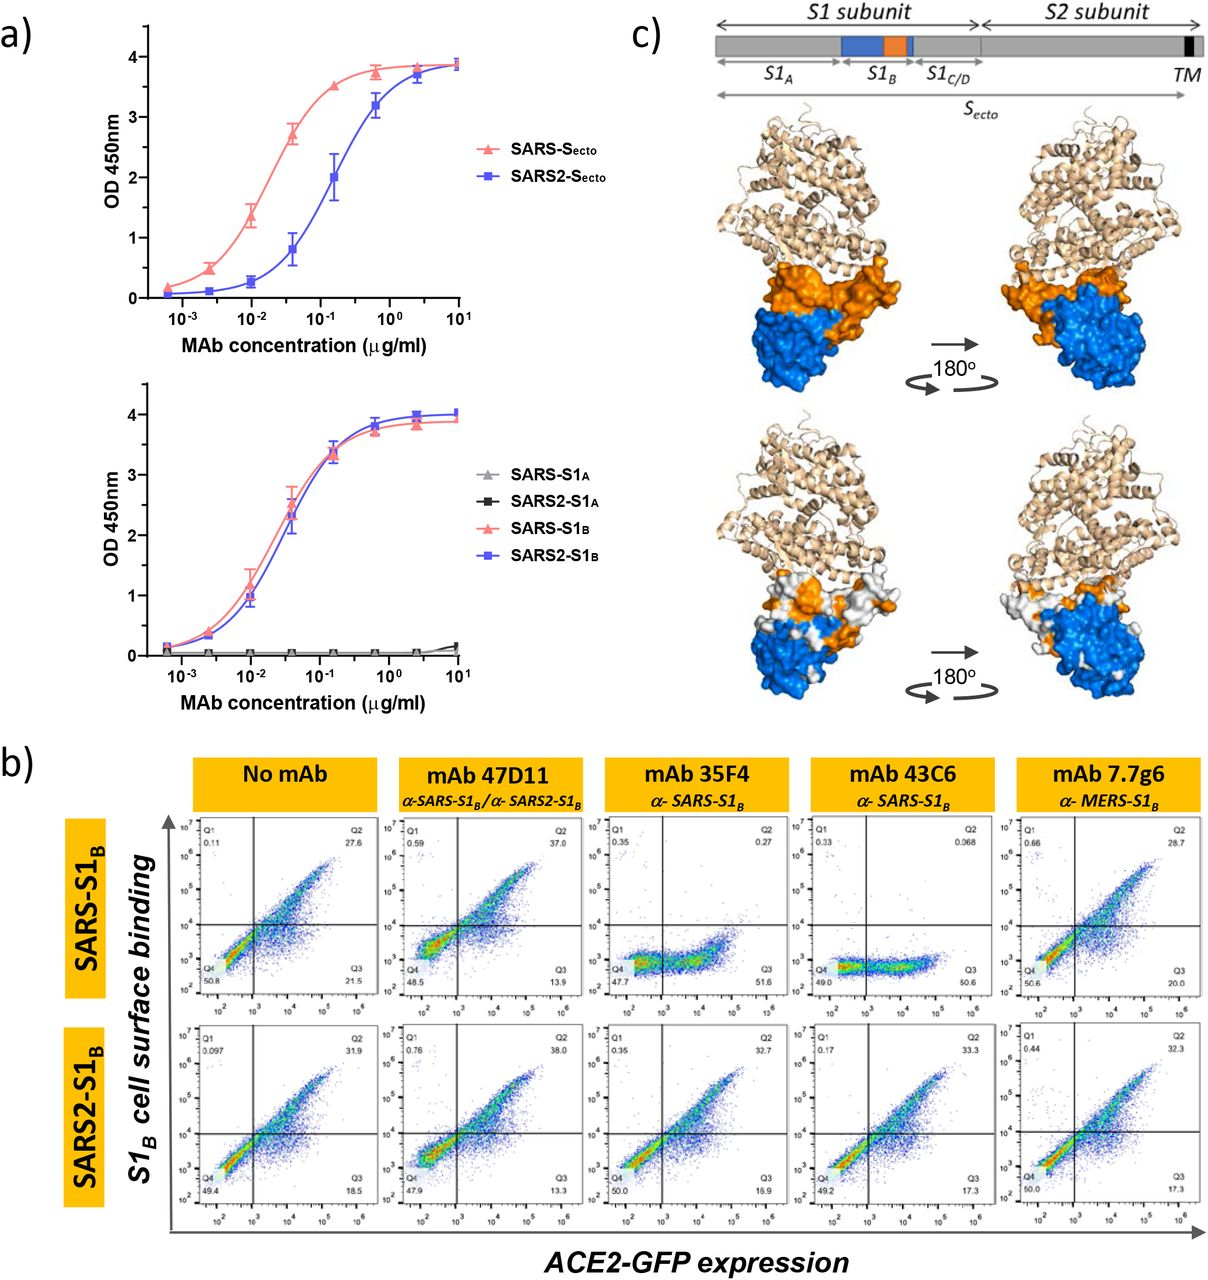 The neutralizing 47D11 monoclonal antibody binds the receptor binding domain of SARS-CoV and SARS-CoV-2 spike proteins without eliminating S1 B /ACE2 receptor interaction. a) ELISA binding curves of 47D11 to S ecto (upper panel) or S1 A and S1 B (RBD) (lower panel) of SARS-S and SARS2-S coated at equimolar concentrations. The average ± SD from at least two independent experiments performed is shown. b) Interference of antibodies with binding of the S-S1 B of SARS-CoV and SARS-CoV-2 to cell surface ACE2-GFP analysed by flow cytometry. Prior to cell binding, S1 B was mixed with mAb (mAbs 47D11, 35F4, 43C6, 7.7G6, in H2L2 format) with indicated specificity in a mAb:S1 B molar ratio of 8:1 (see Suppl.Fig.4 for an extensive analysis using different mAb:S1 B molar ratio's). Cells are analysed for (ACE2-)GFP expression (x-axis) and S1 B binding (y-axis). Percentages of cells that scored negative, single positive, or double positive are shown in each quadrant. c) Divergence in surface residues in S1 B of SARS-CoV and SARS-CoV-2. Upper panel: Structure of the SARS-CoV spike protein S1 B RBD in complex with human ACE2 receptor (PDB: 2AJF) 18 . ACE2 (wheat color) is visualized in ribbon presentation. The S1 B core domain (blue) and subdomain (orange) are displayed in surface presentation using PyMOL, and are visualized with the same colors in the linear diagram of the spike protein above, with positions of the S1 and S2 subunits, the S ectodomain (S ecto ), the S1 domains S1 A-D and the transmembrane domain (TM) indicated. Lower panel: Similar as panel above with surface residues on S1 B of SARS-CoV that are at variance with SARS-CoV-2 colorored in white.